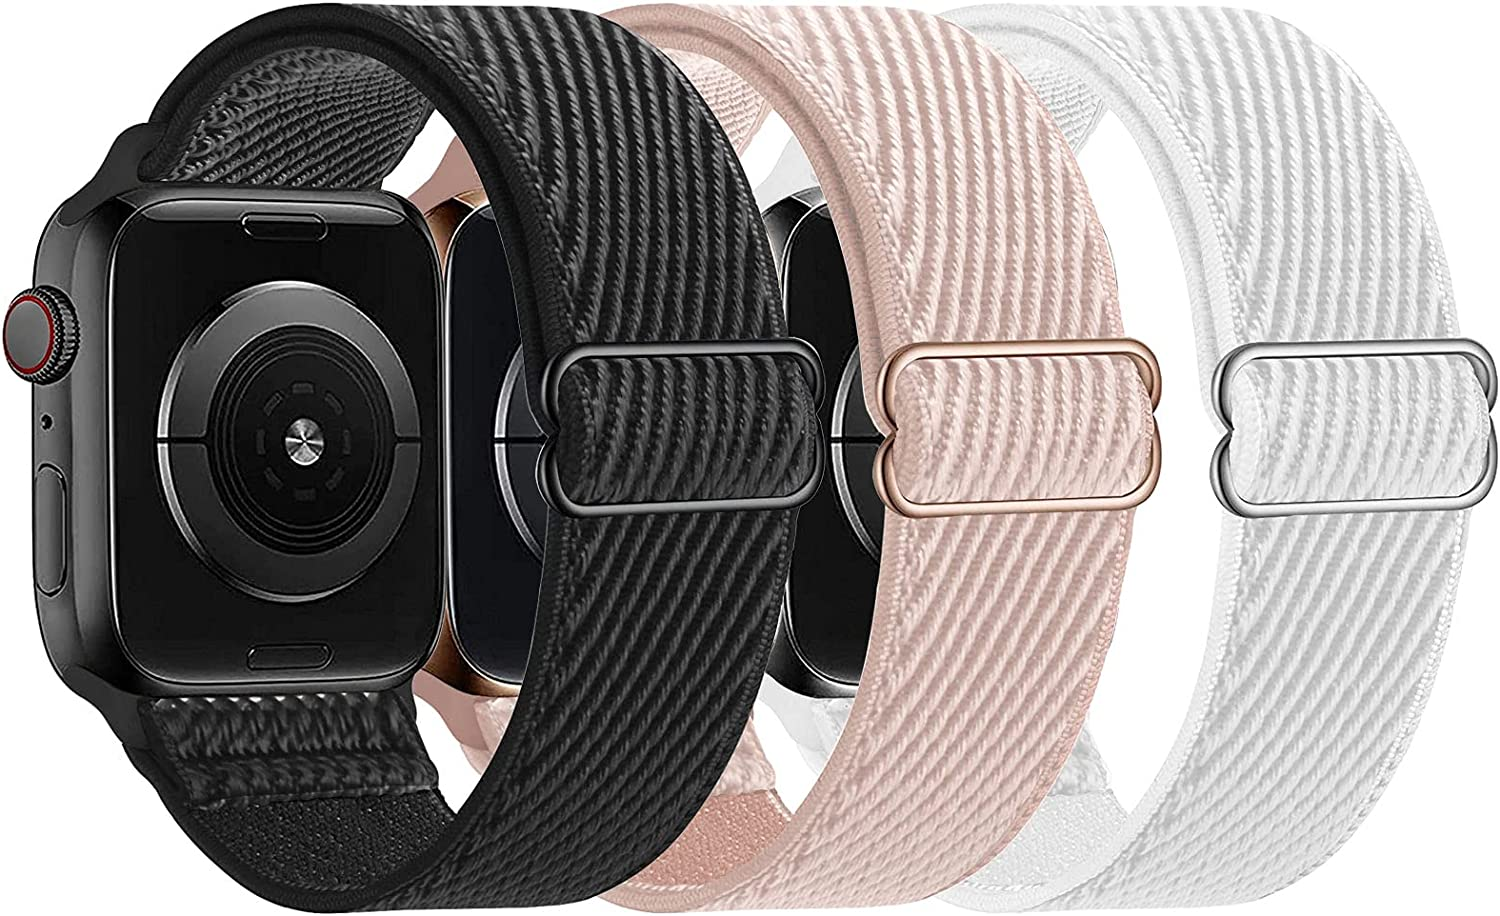 LANGXIAN 3 Pack Nylon Elastic Strap Compatible with Apple Watch Bands, Solo Loop Adjustable Stretch Braided Wristband for iWatch Series 6/5/4/3/2/1/SE, 42mm 44mm (Black/Rose Pink/White)